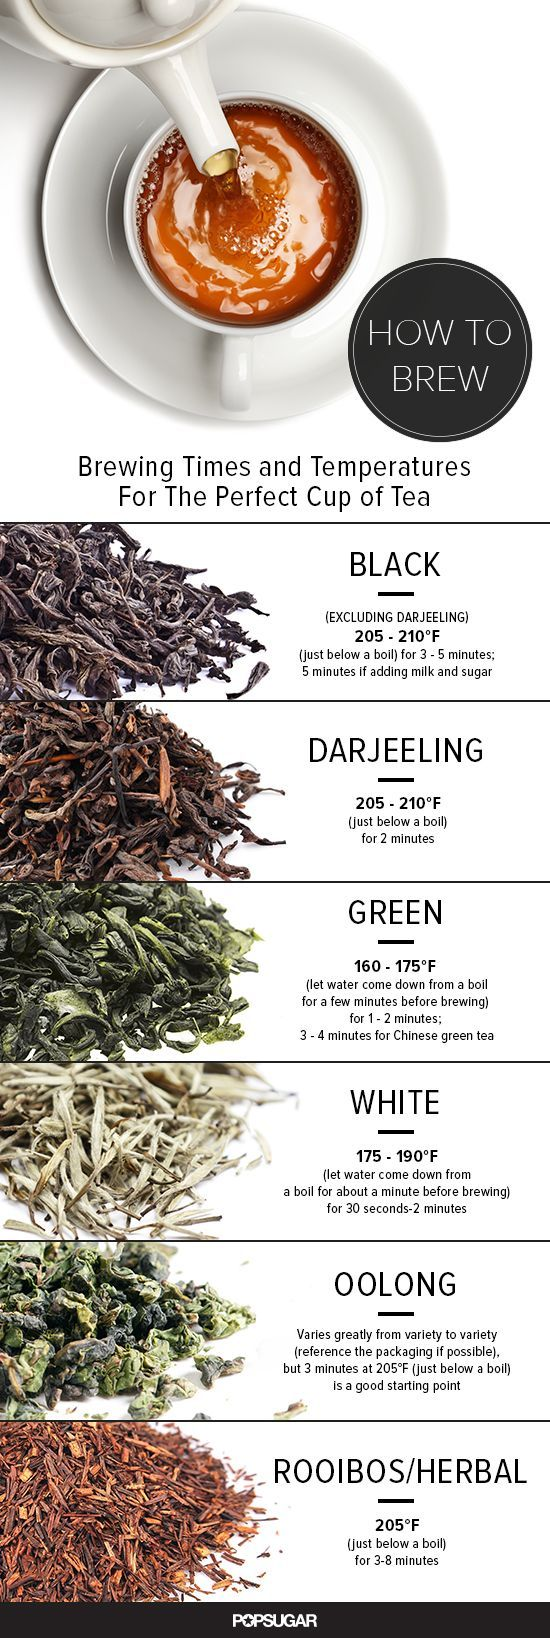 Learn how to brew tea like a pro without being an tea expert